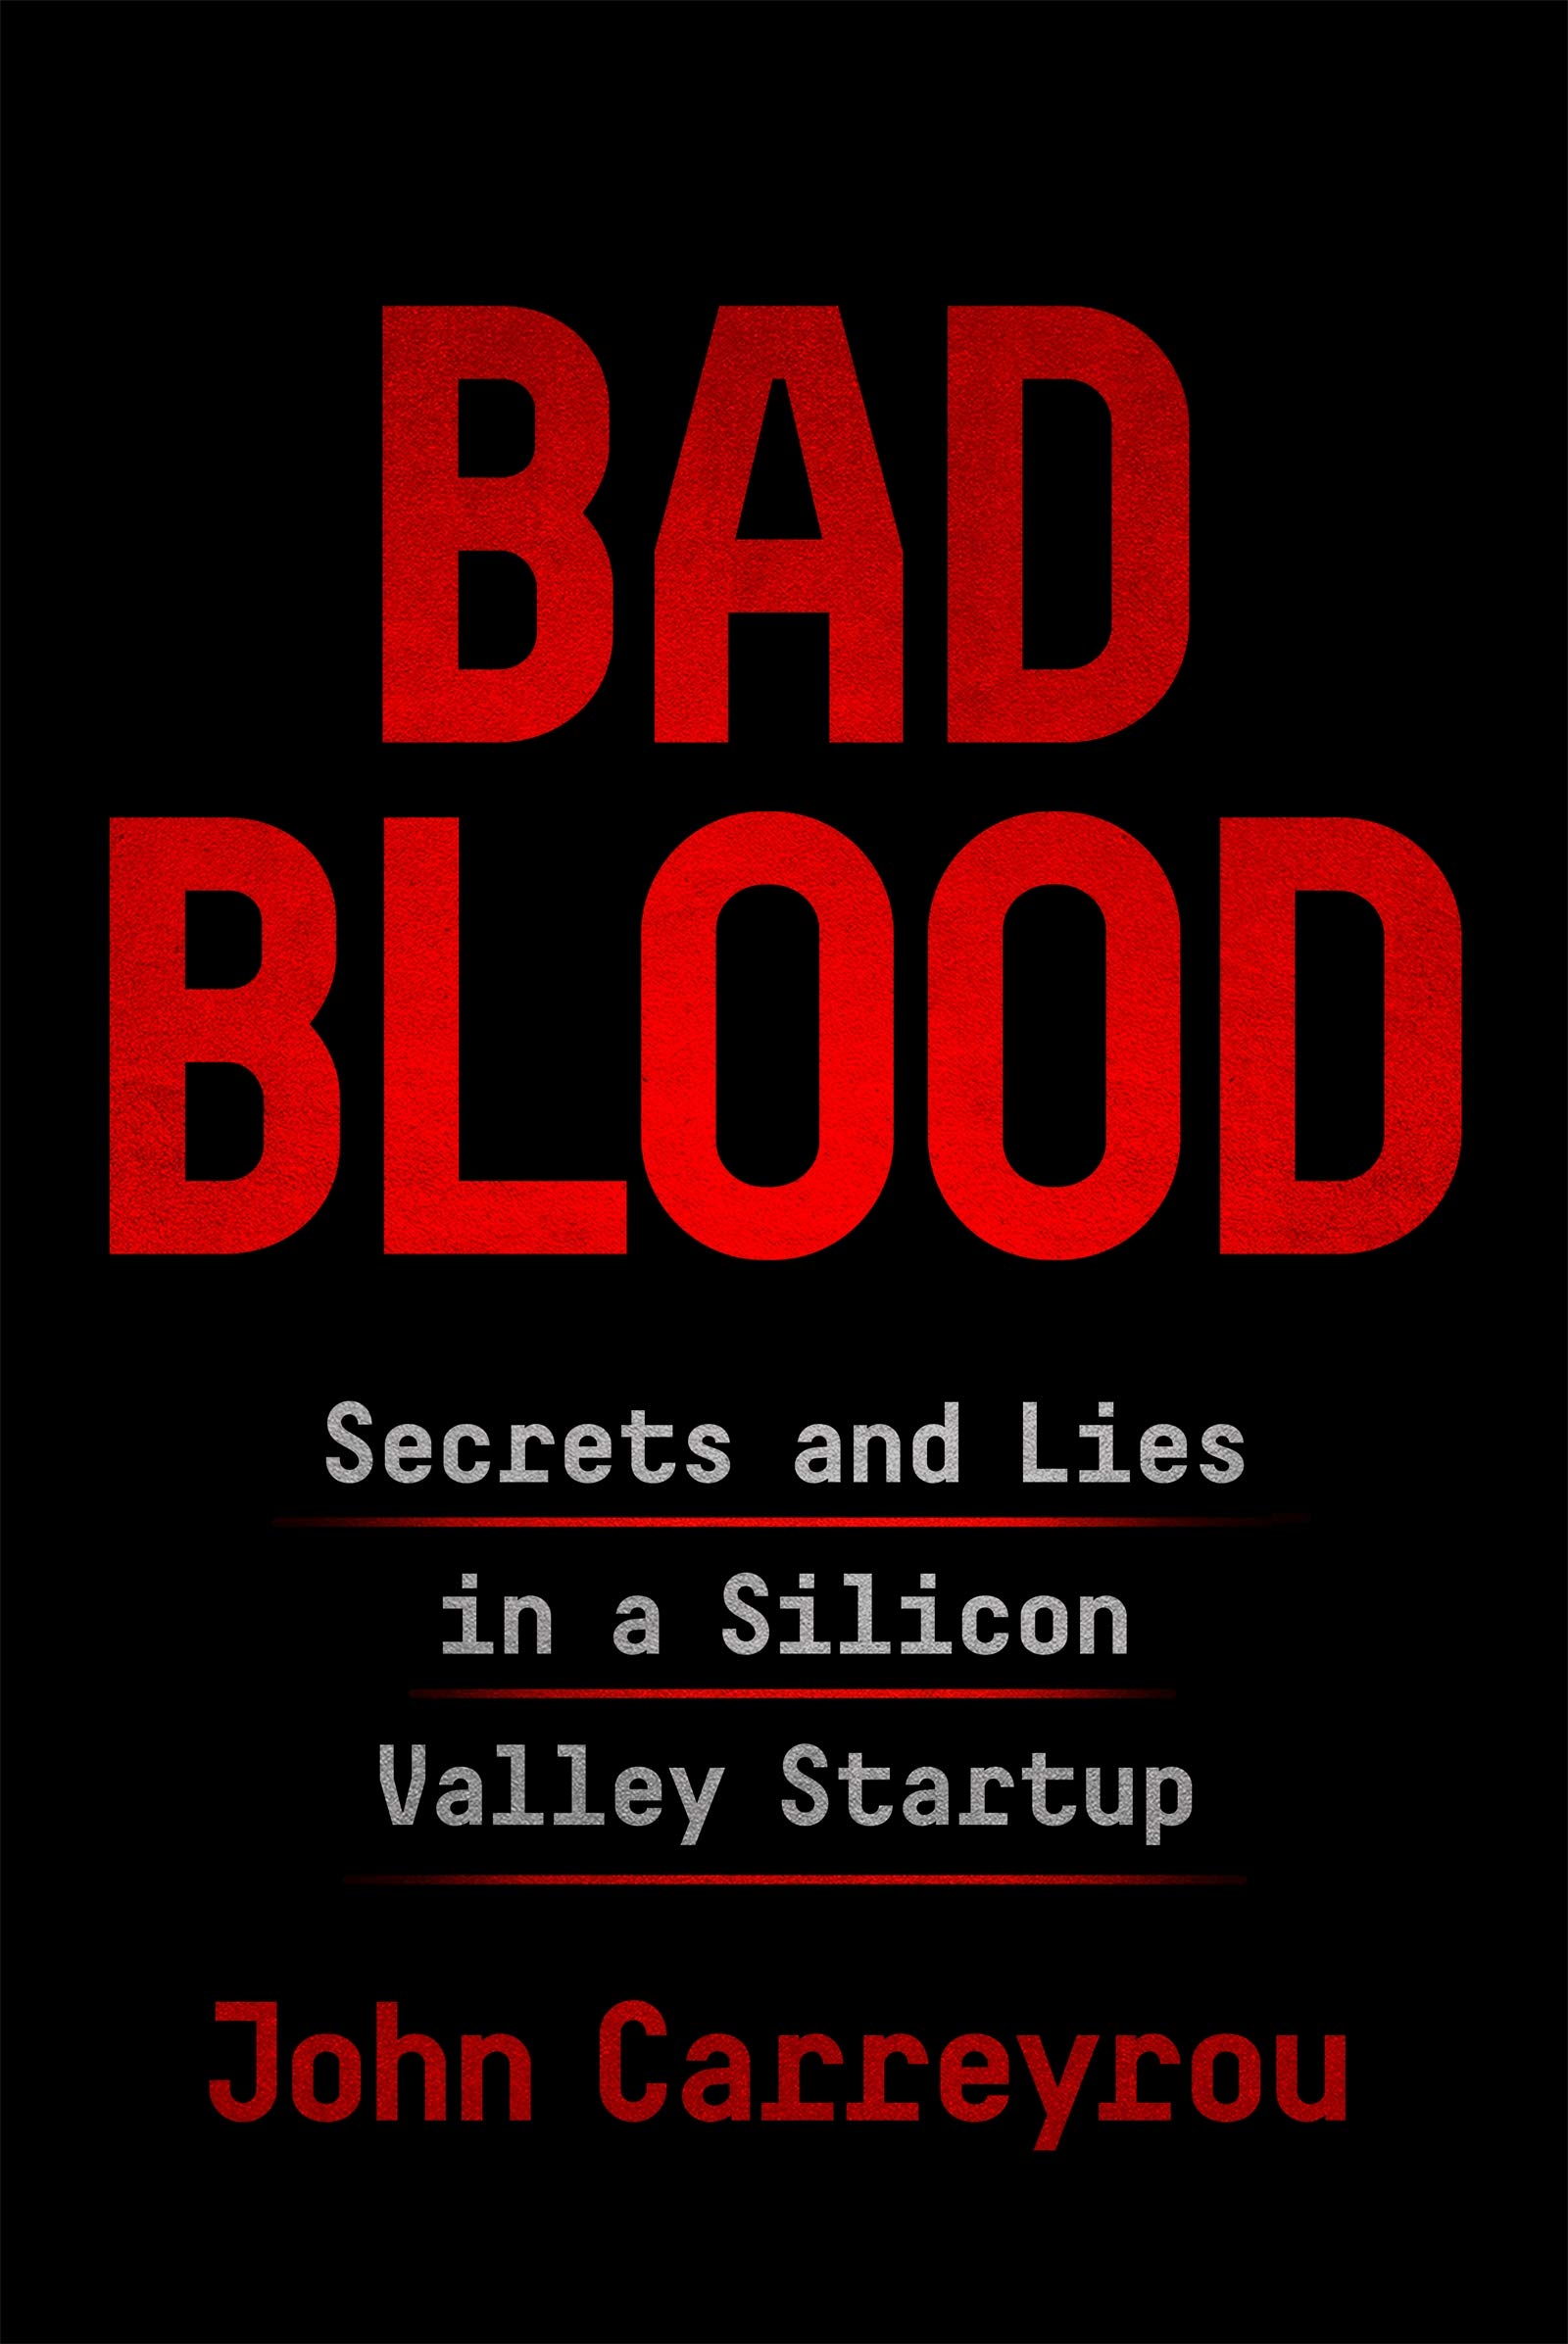 Bad Blood: Secrets and Lies in Silicon Valley